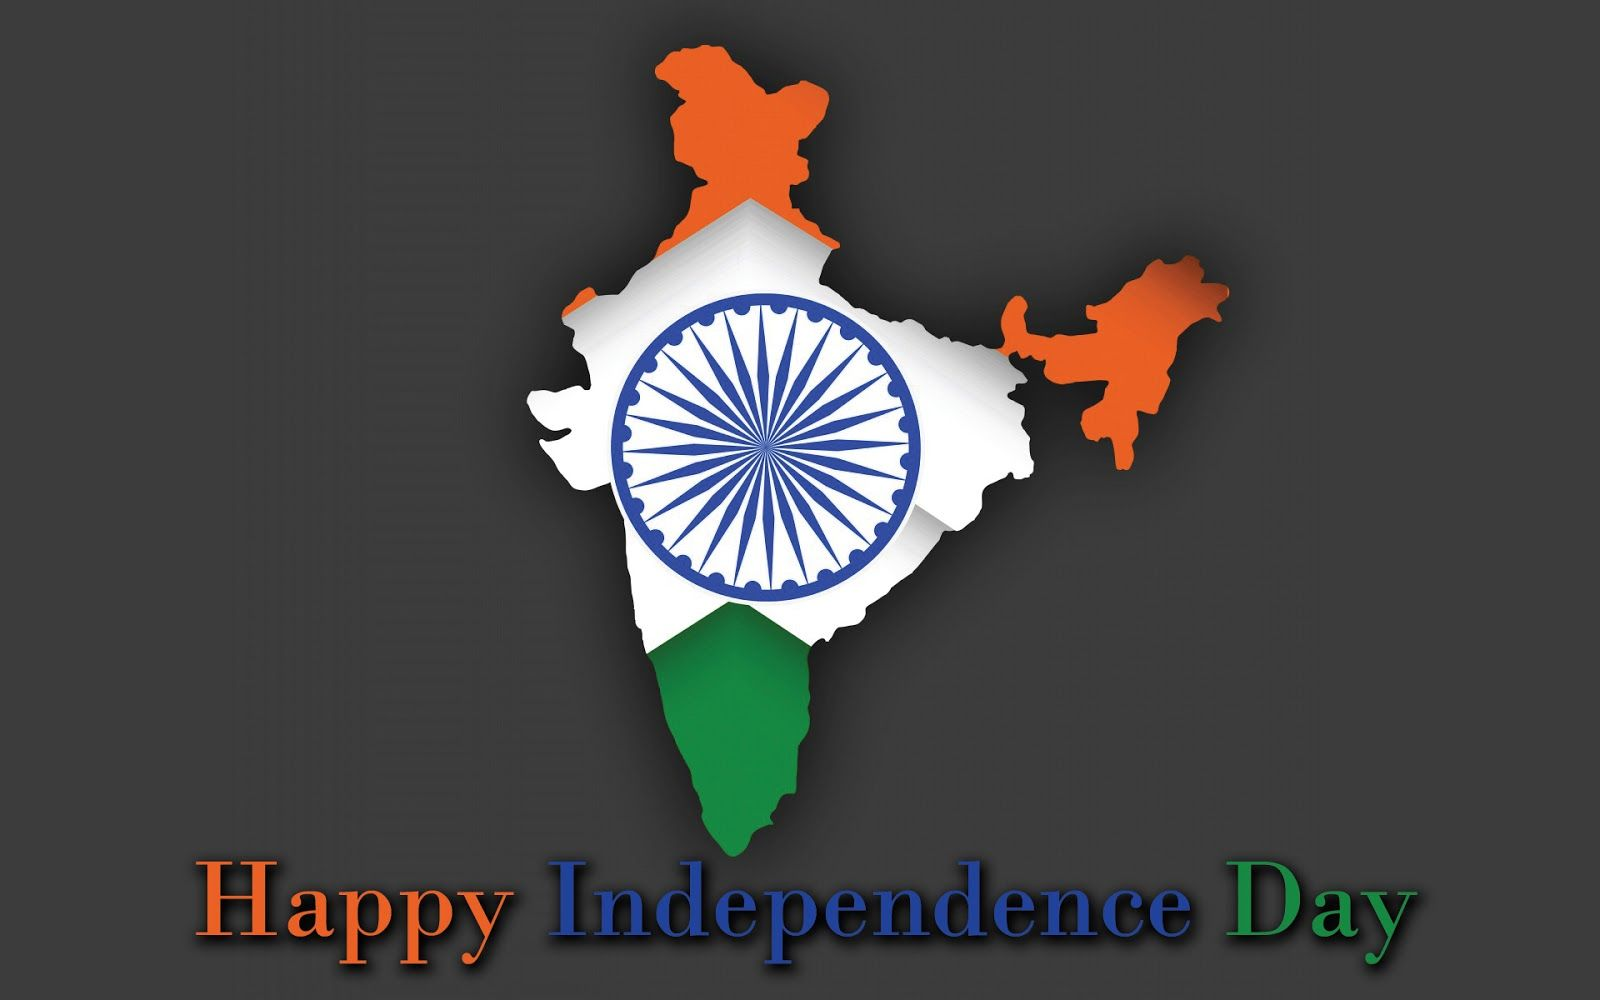 Happy Independence Day To All Hd Wallpaper Greetings And Wishes